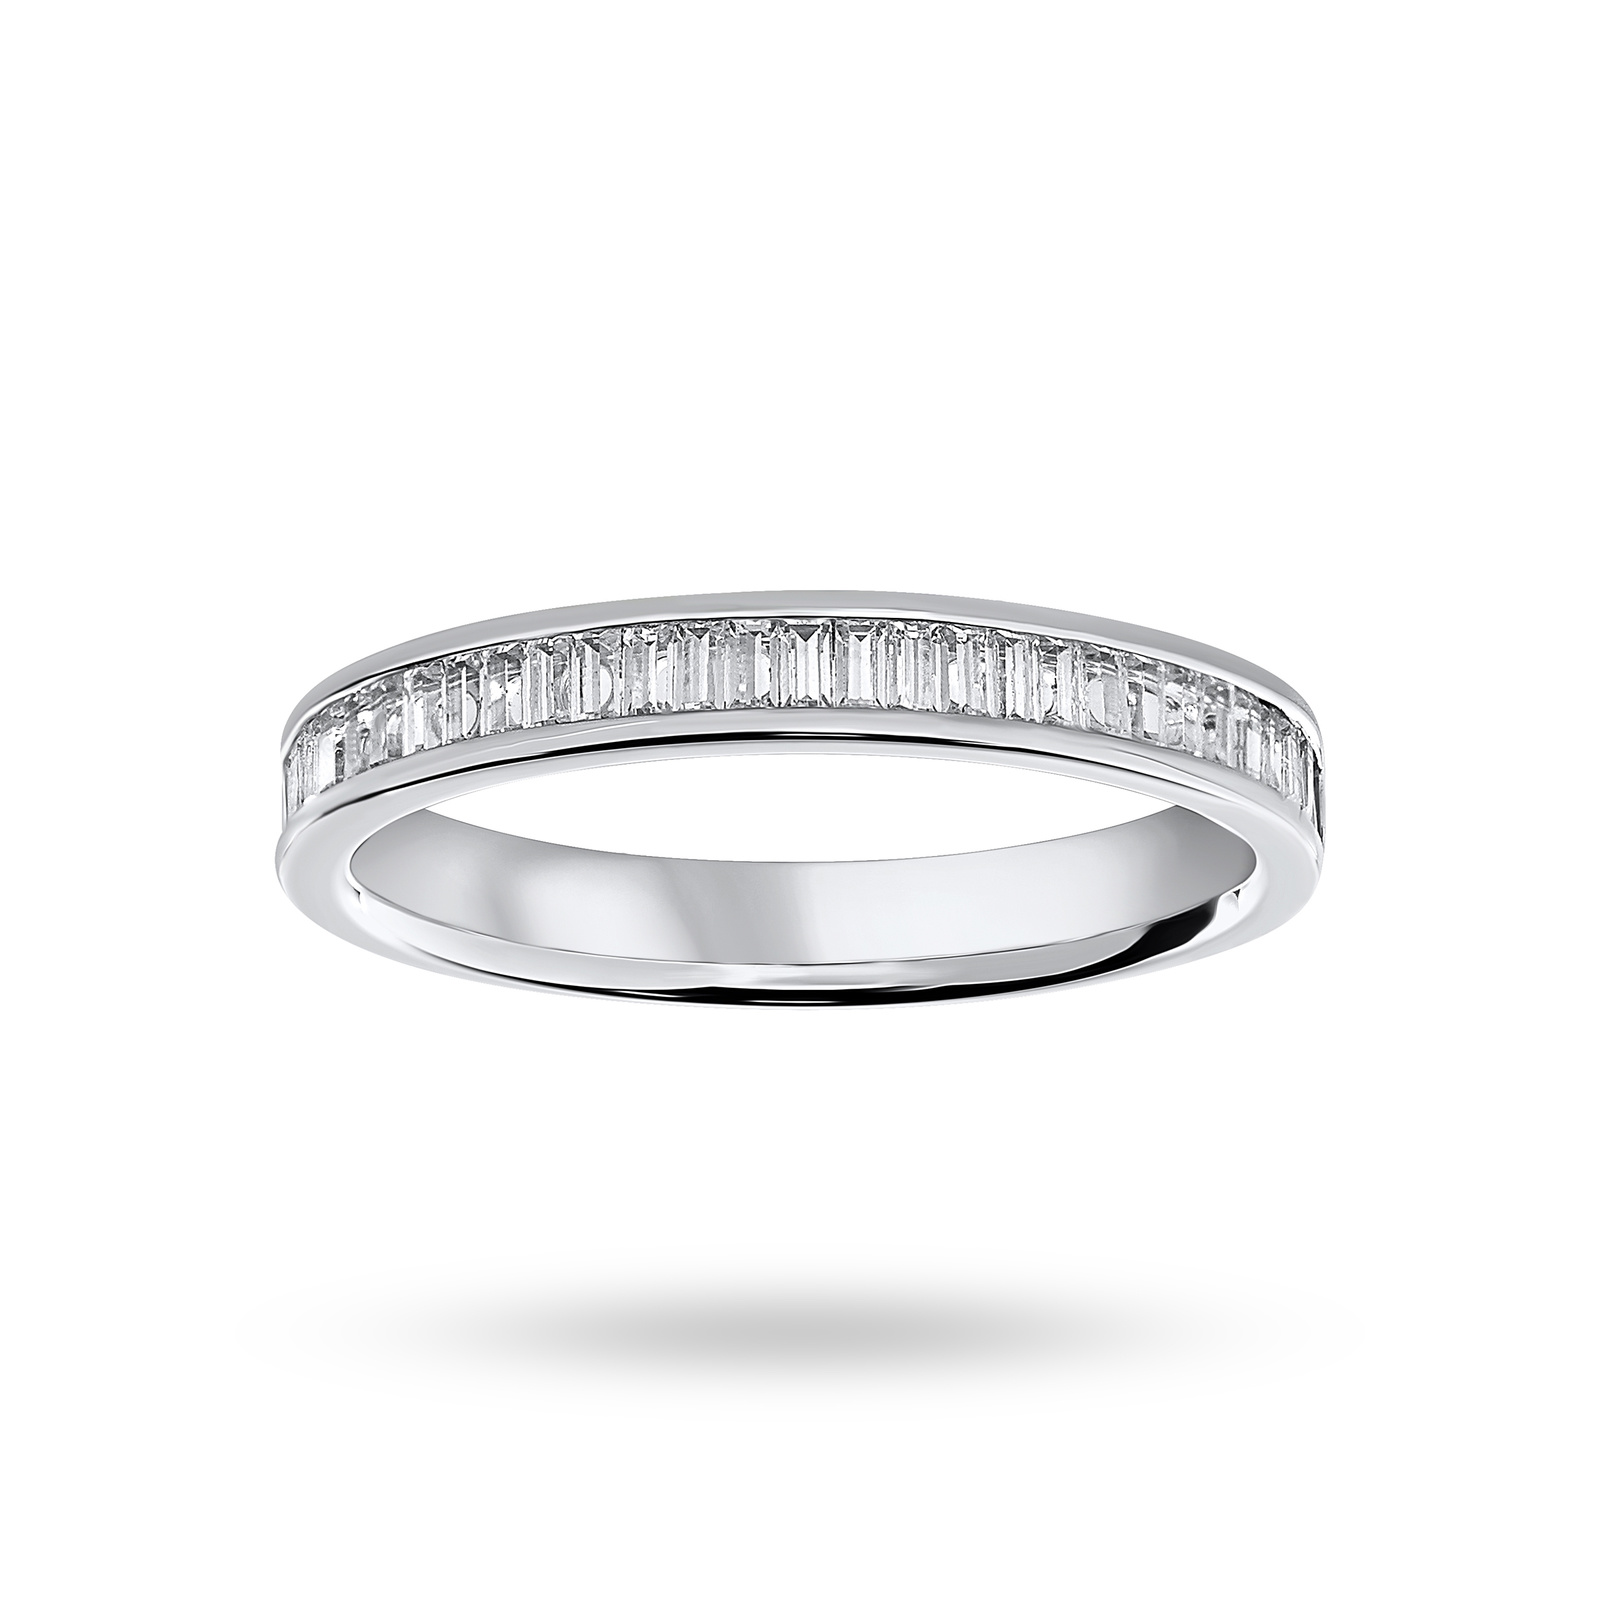 Platinum 0.33 Carat Baguette Cut Half Eternity Ring